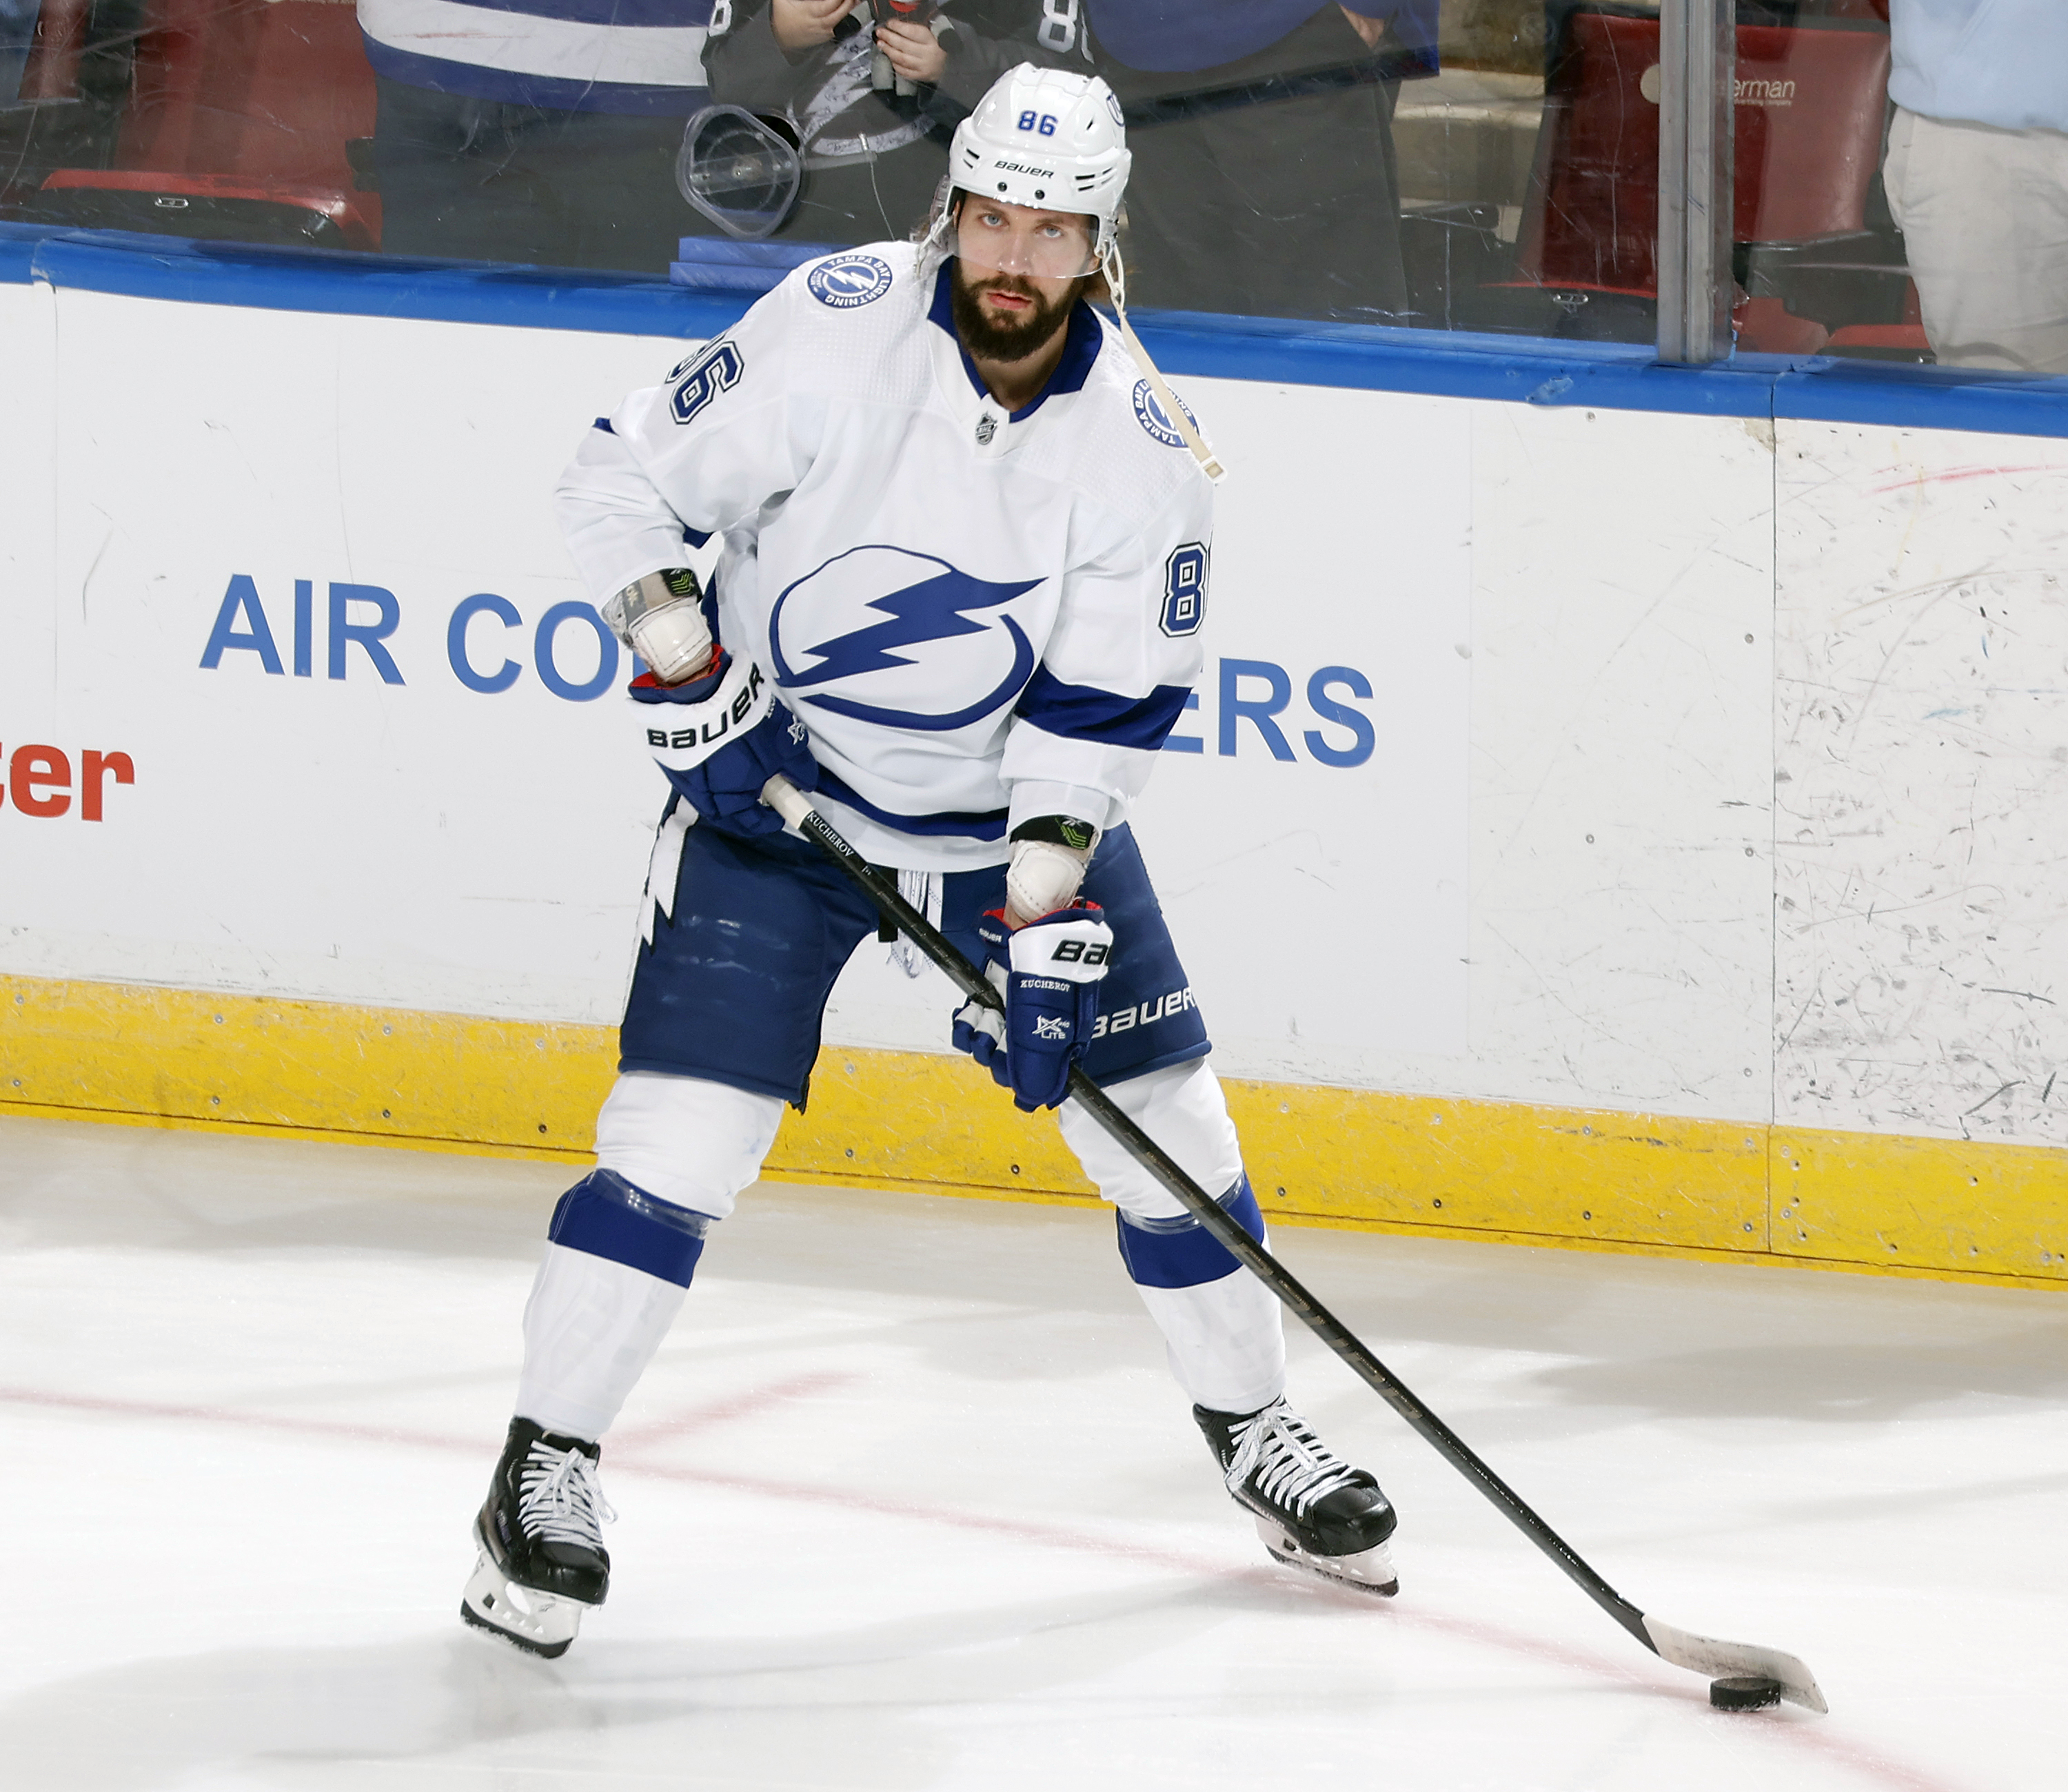 Nikita Kucherov of the Tampa Bay Lightning skates prior to an NFL preseason game against the Florida Panthers at the FLA Live Arena on October 9, 2021 in Sunrise, Florida.